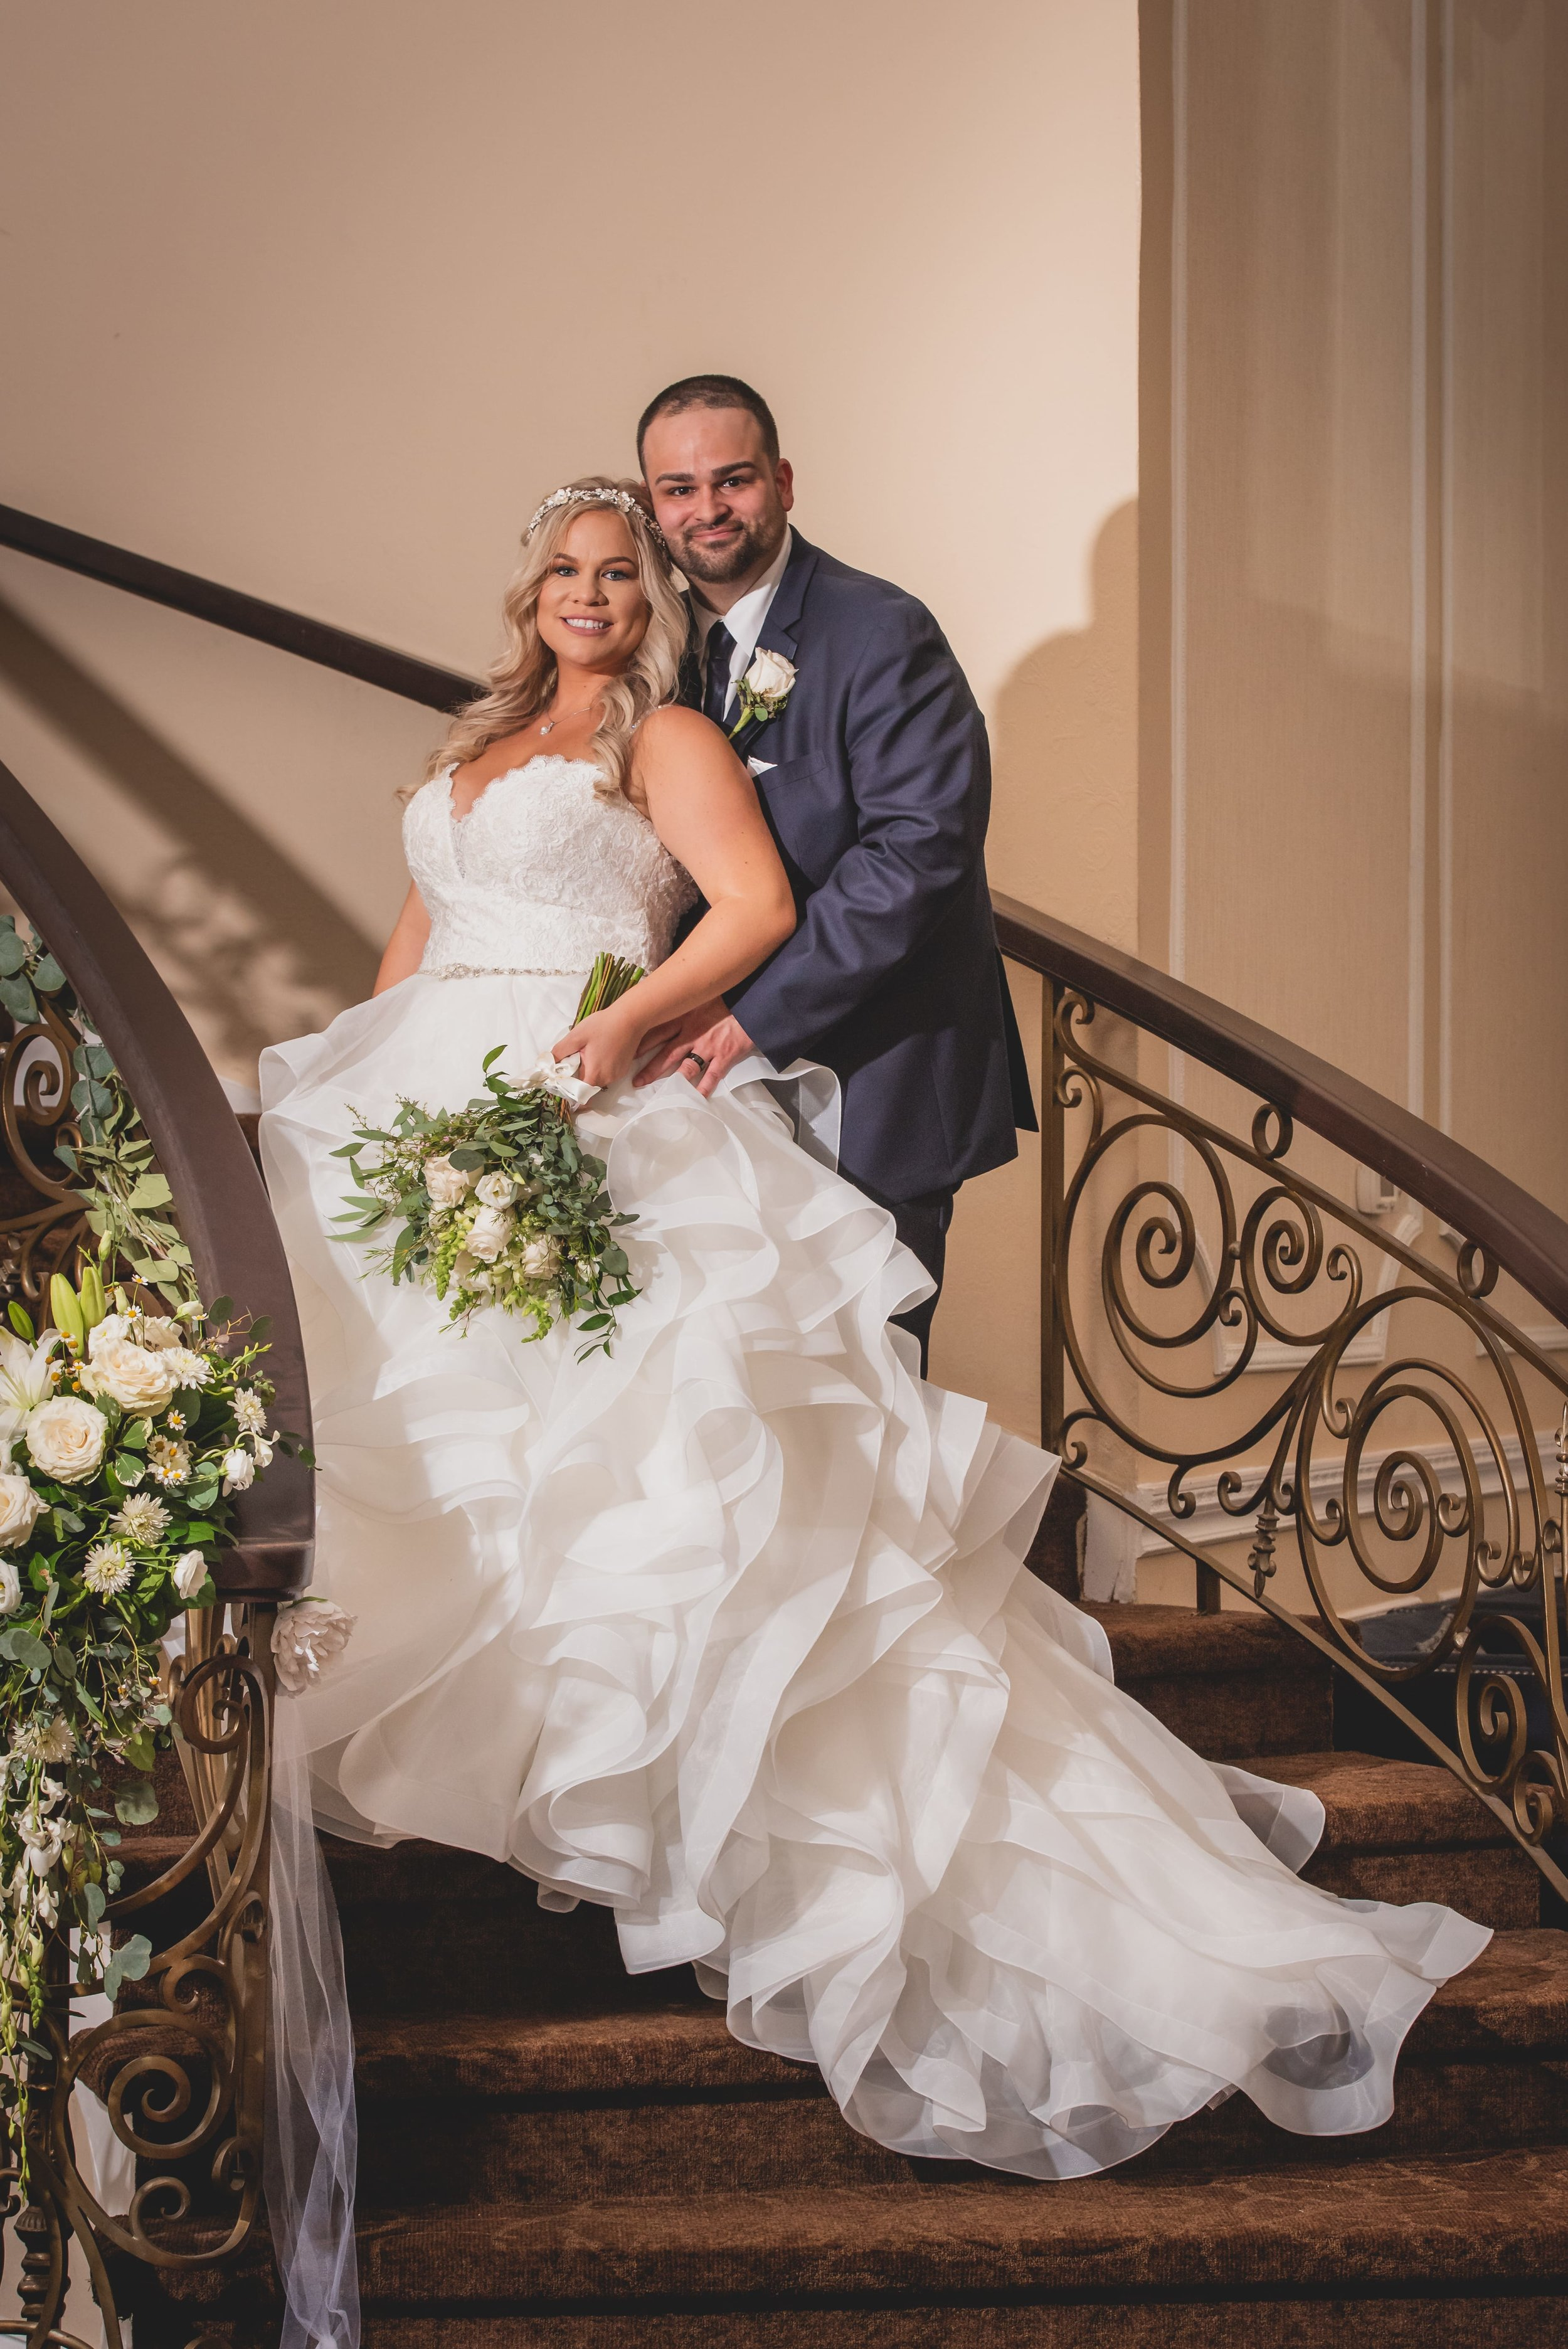 Bride and groom smiling on a curving staircase.